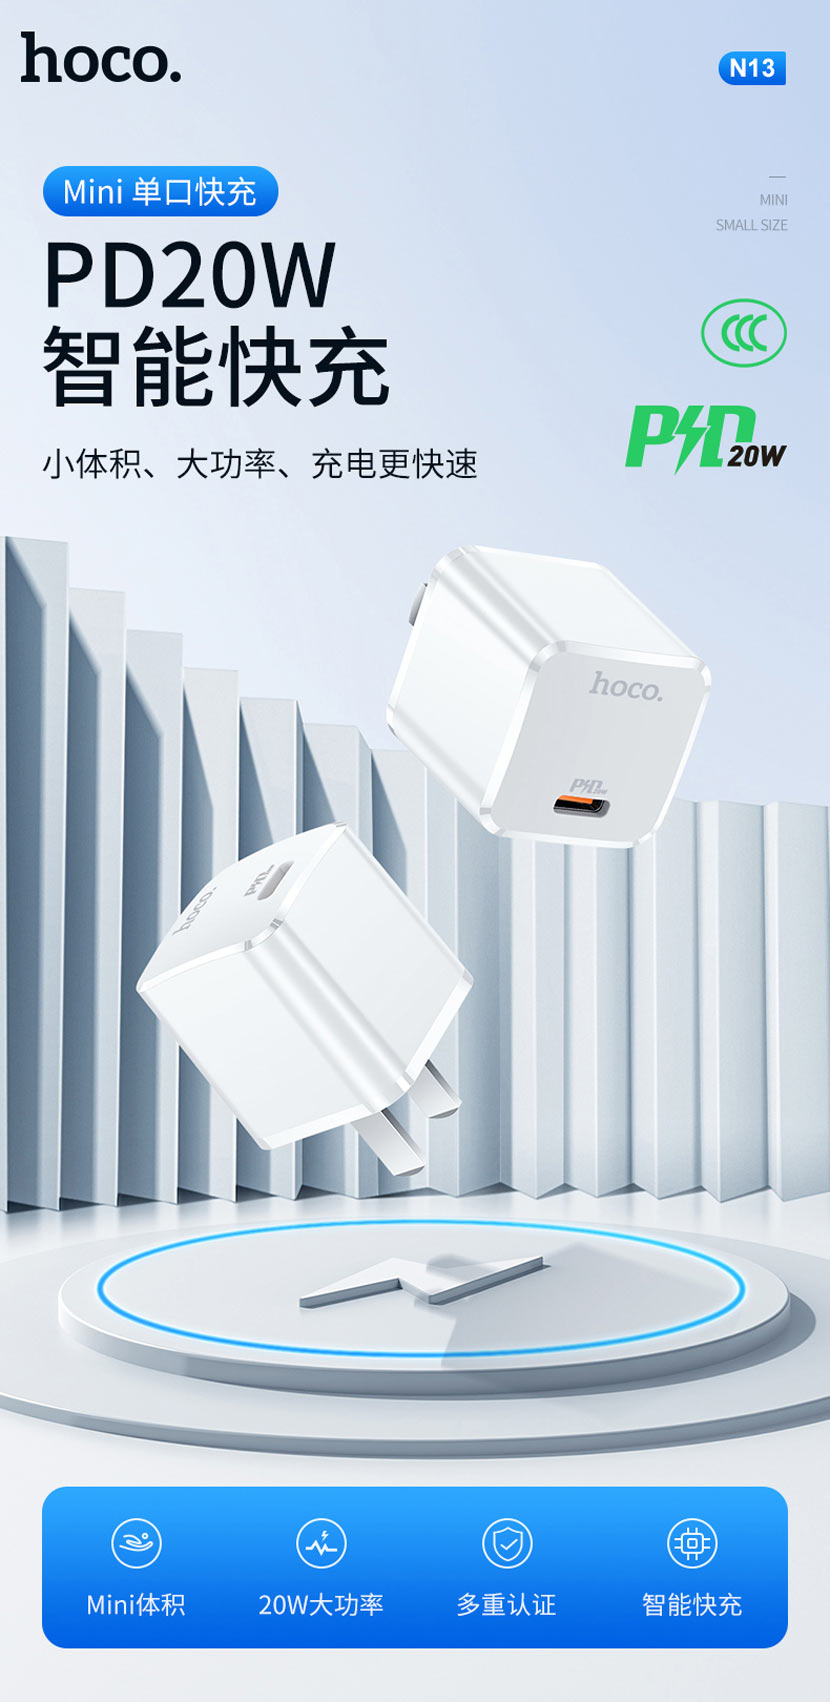 hoco news n10 n13 starter single port pd20w wall charger cn